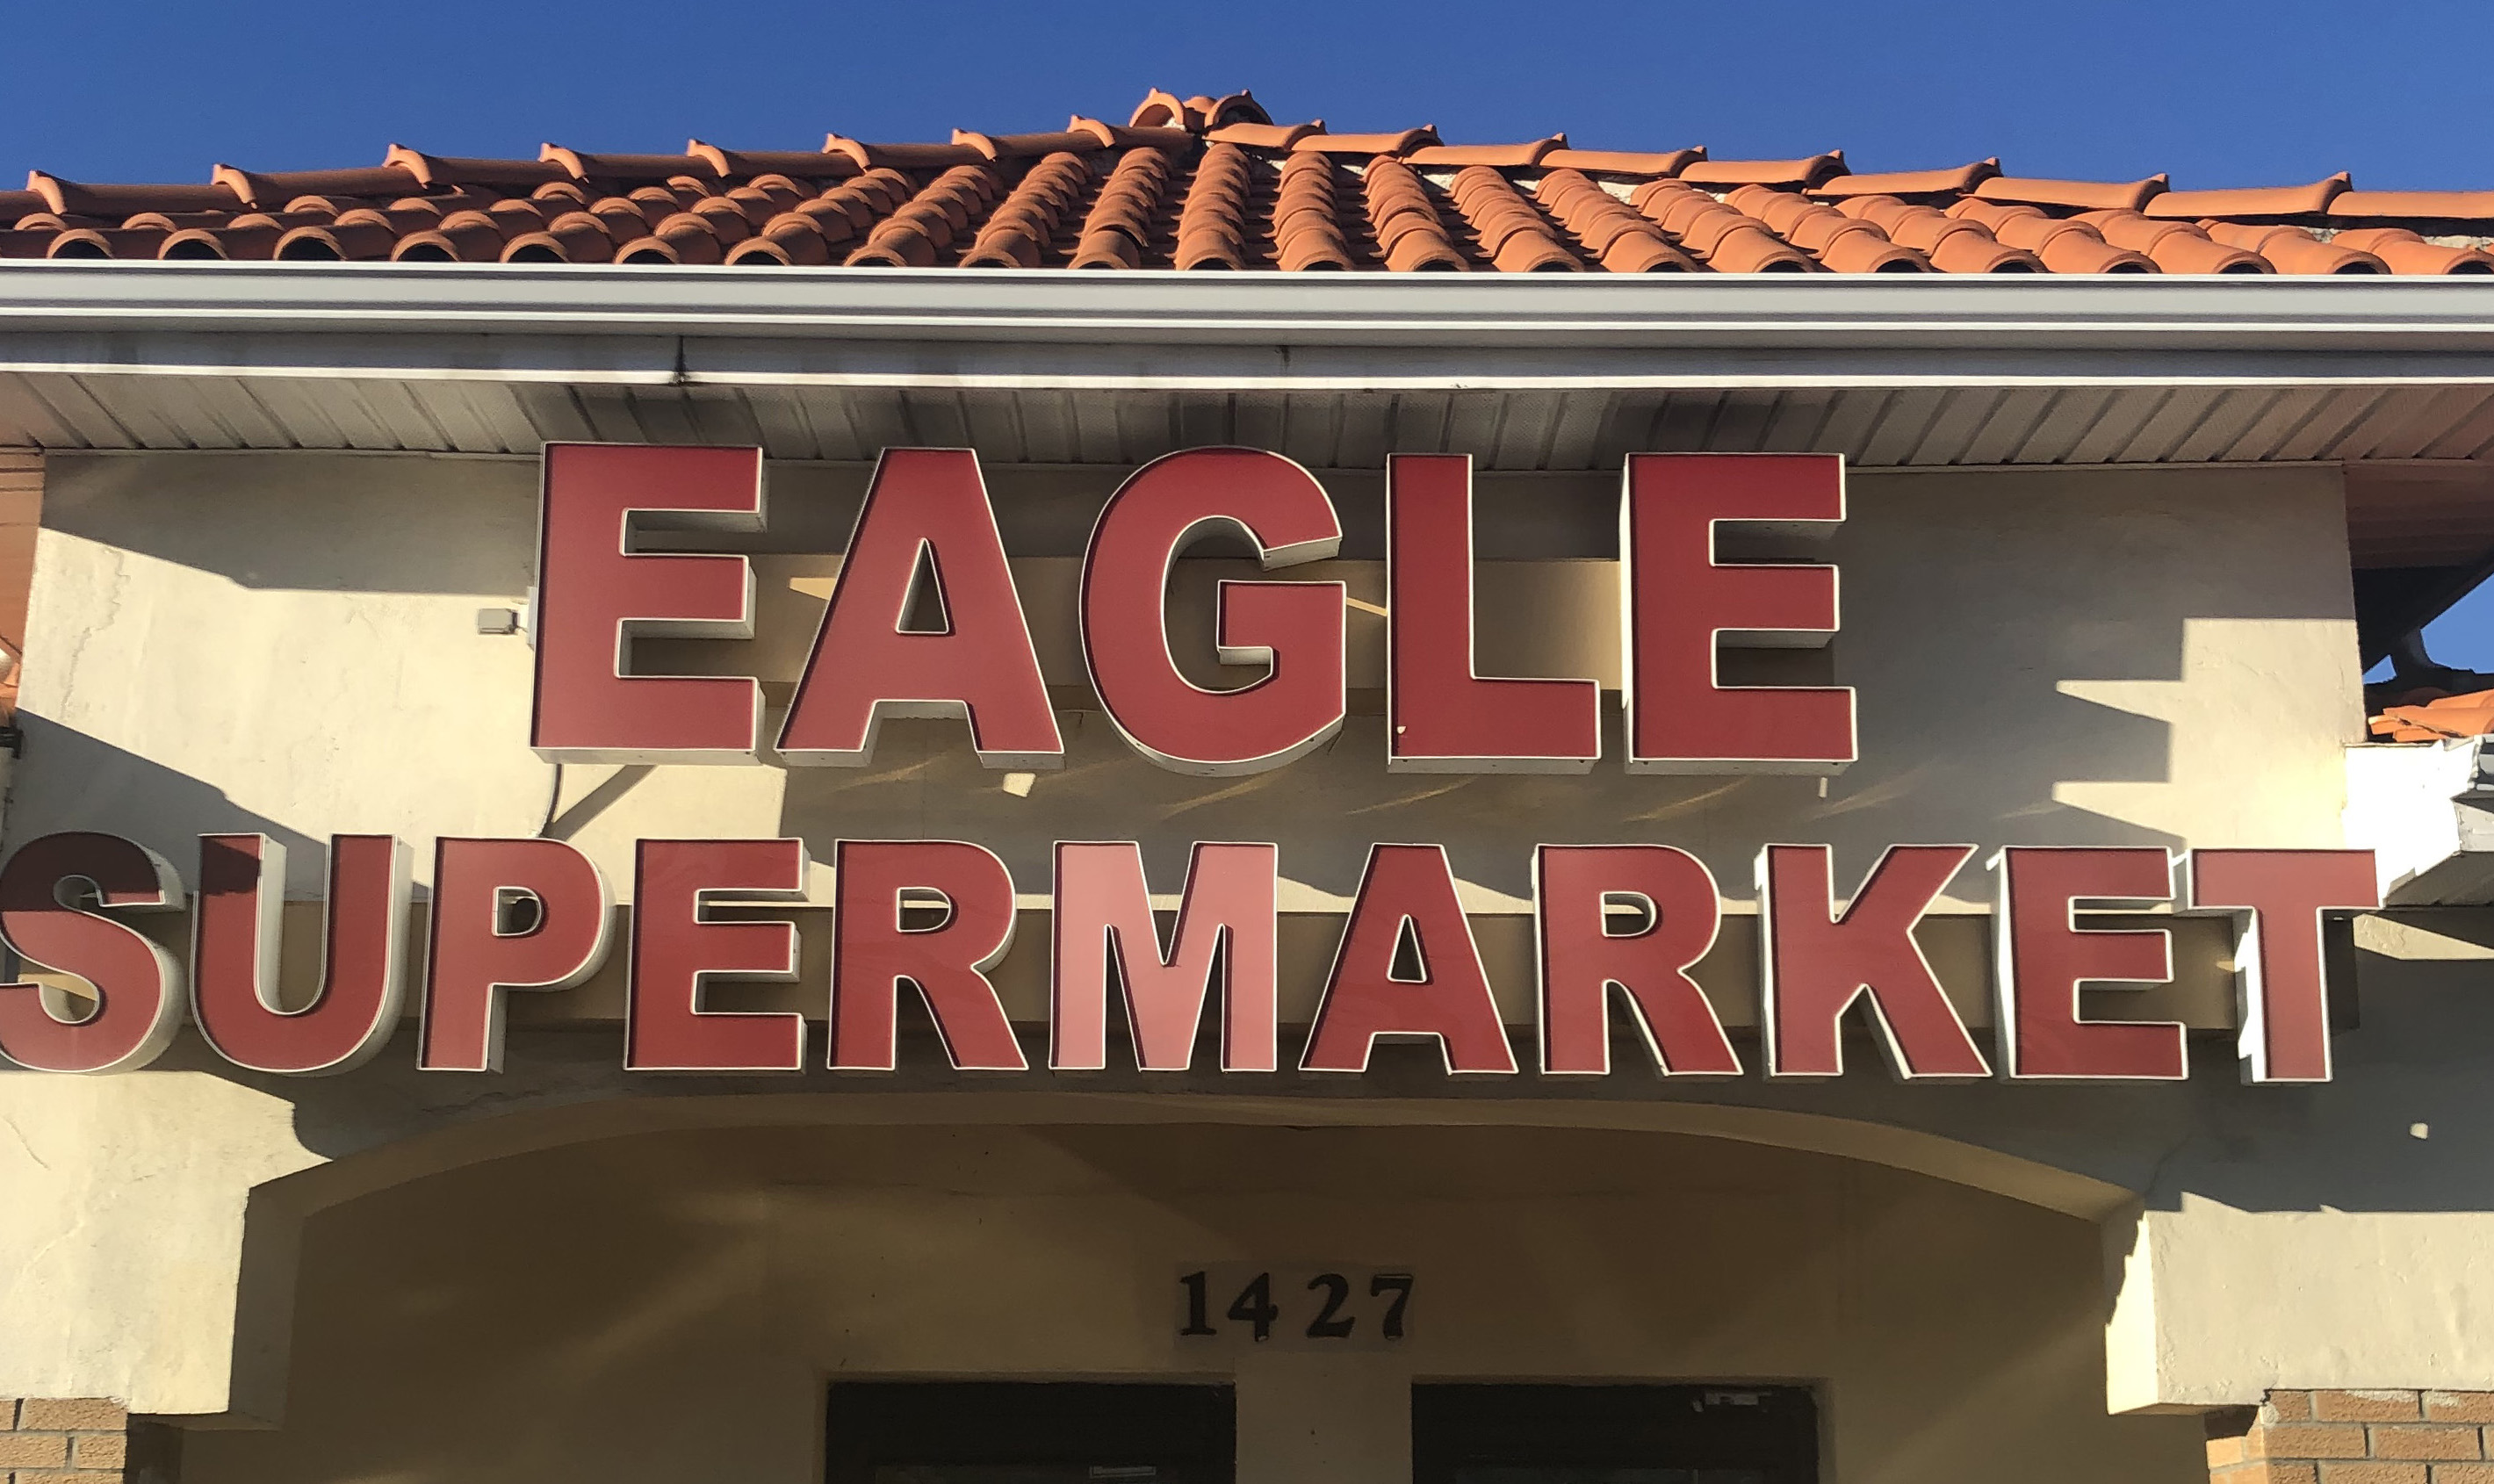 Eagle Supermarket, Roselle, NJ